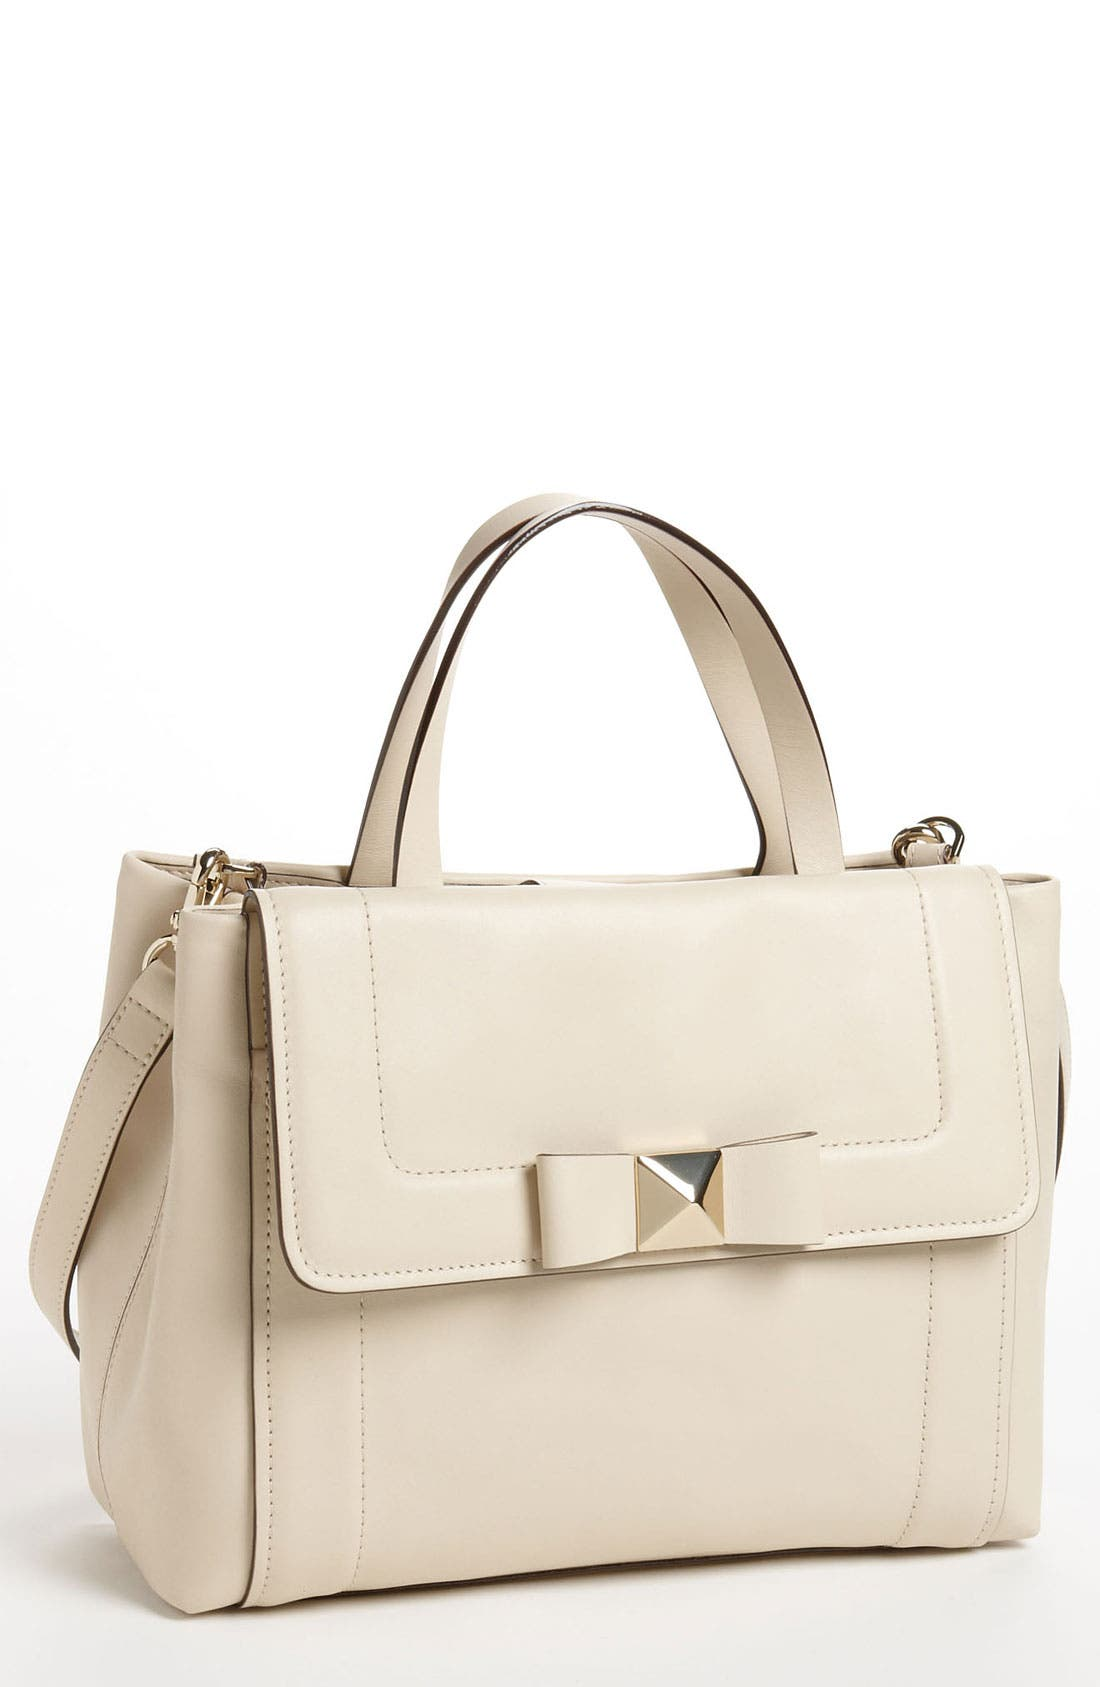 Alternate Image 1 Selected - kate spade new york 'bow terrace - bradshaw' satchel, medium